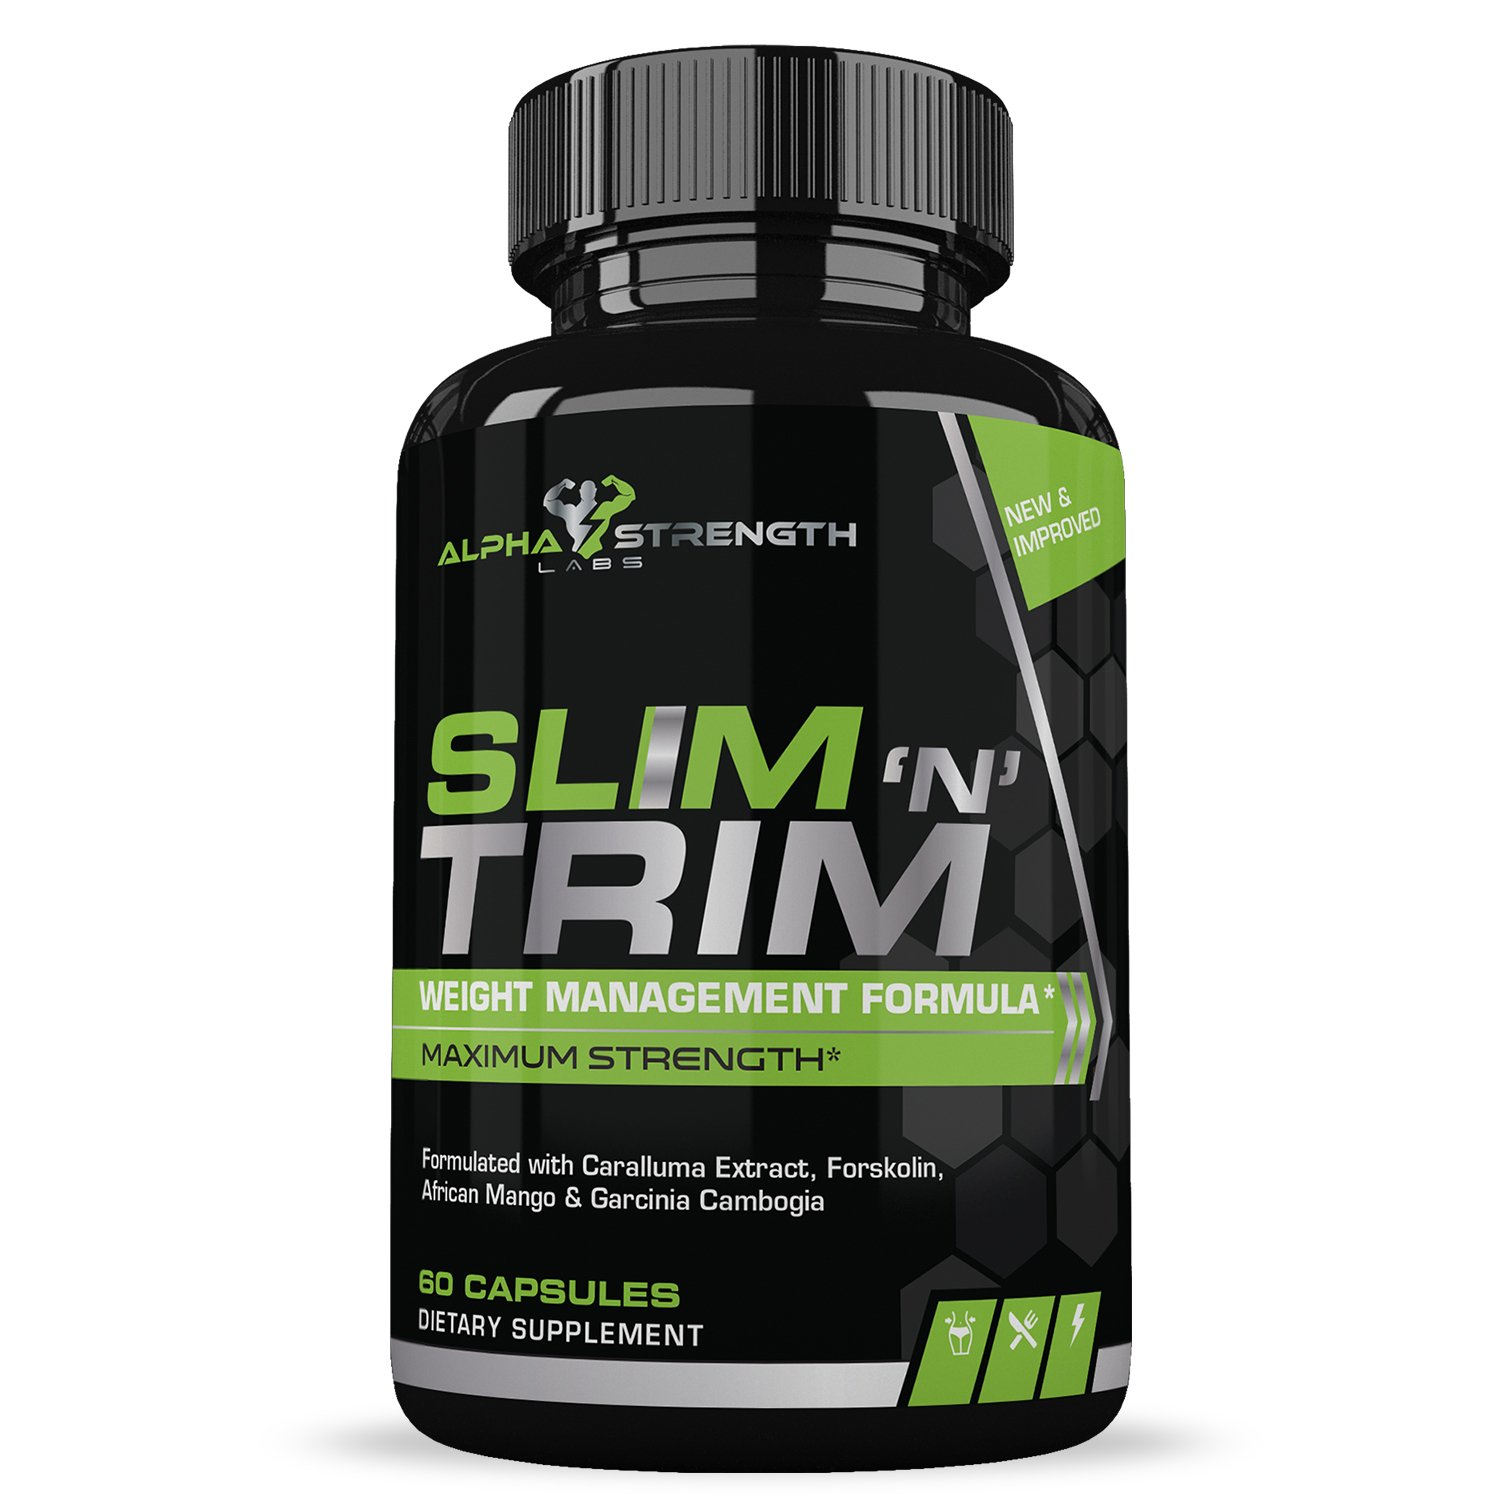 Alpha Strength Labs Weight Loss Pills That Work for Women and Men - Natural Appetite Suppressant & Carb Blocker for Fat Burning with Garcinia Cambogia, Forskolin, Mango & Caralluma - 60 Caplets